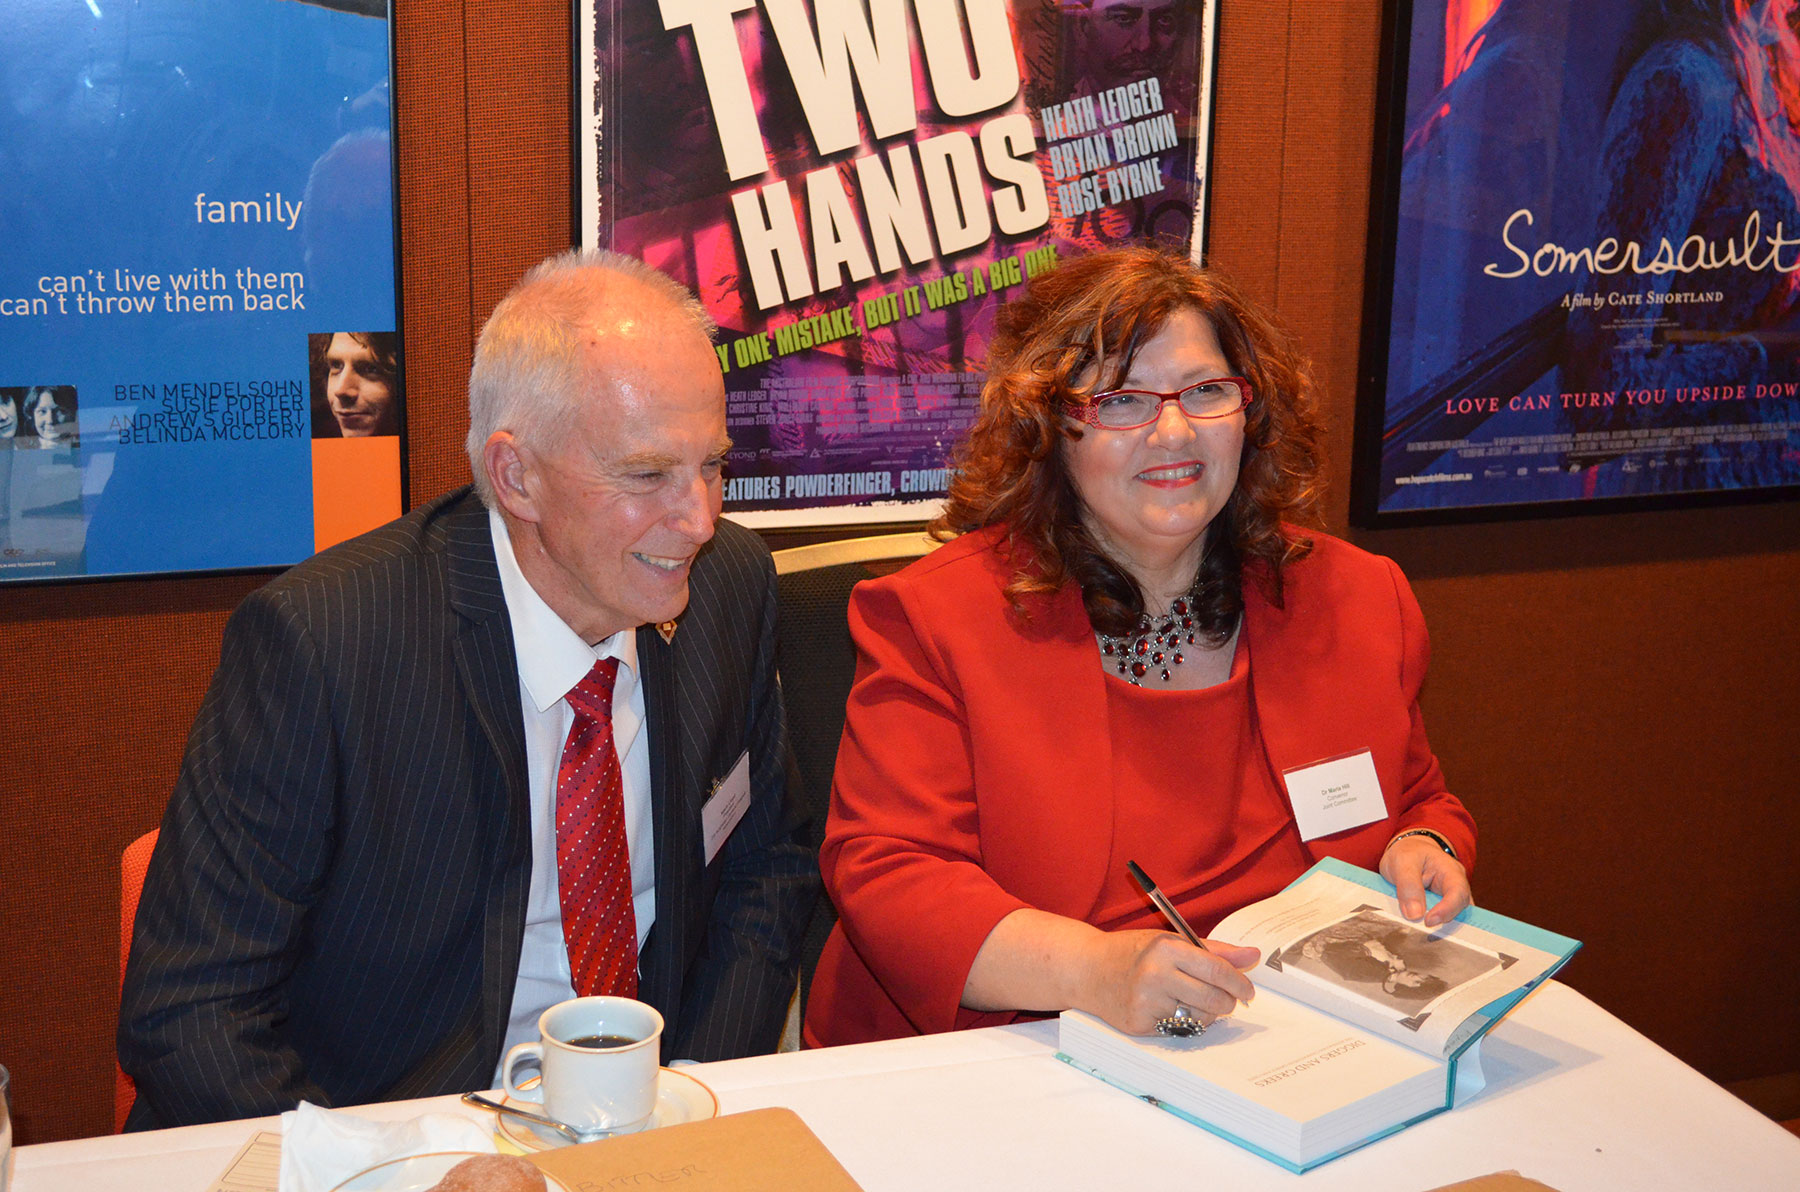 08 Symposium 6th Dec 2012. Maria Hill and Keith Lloyd Book Signing